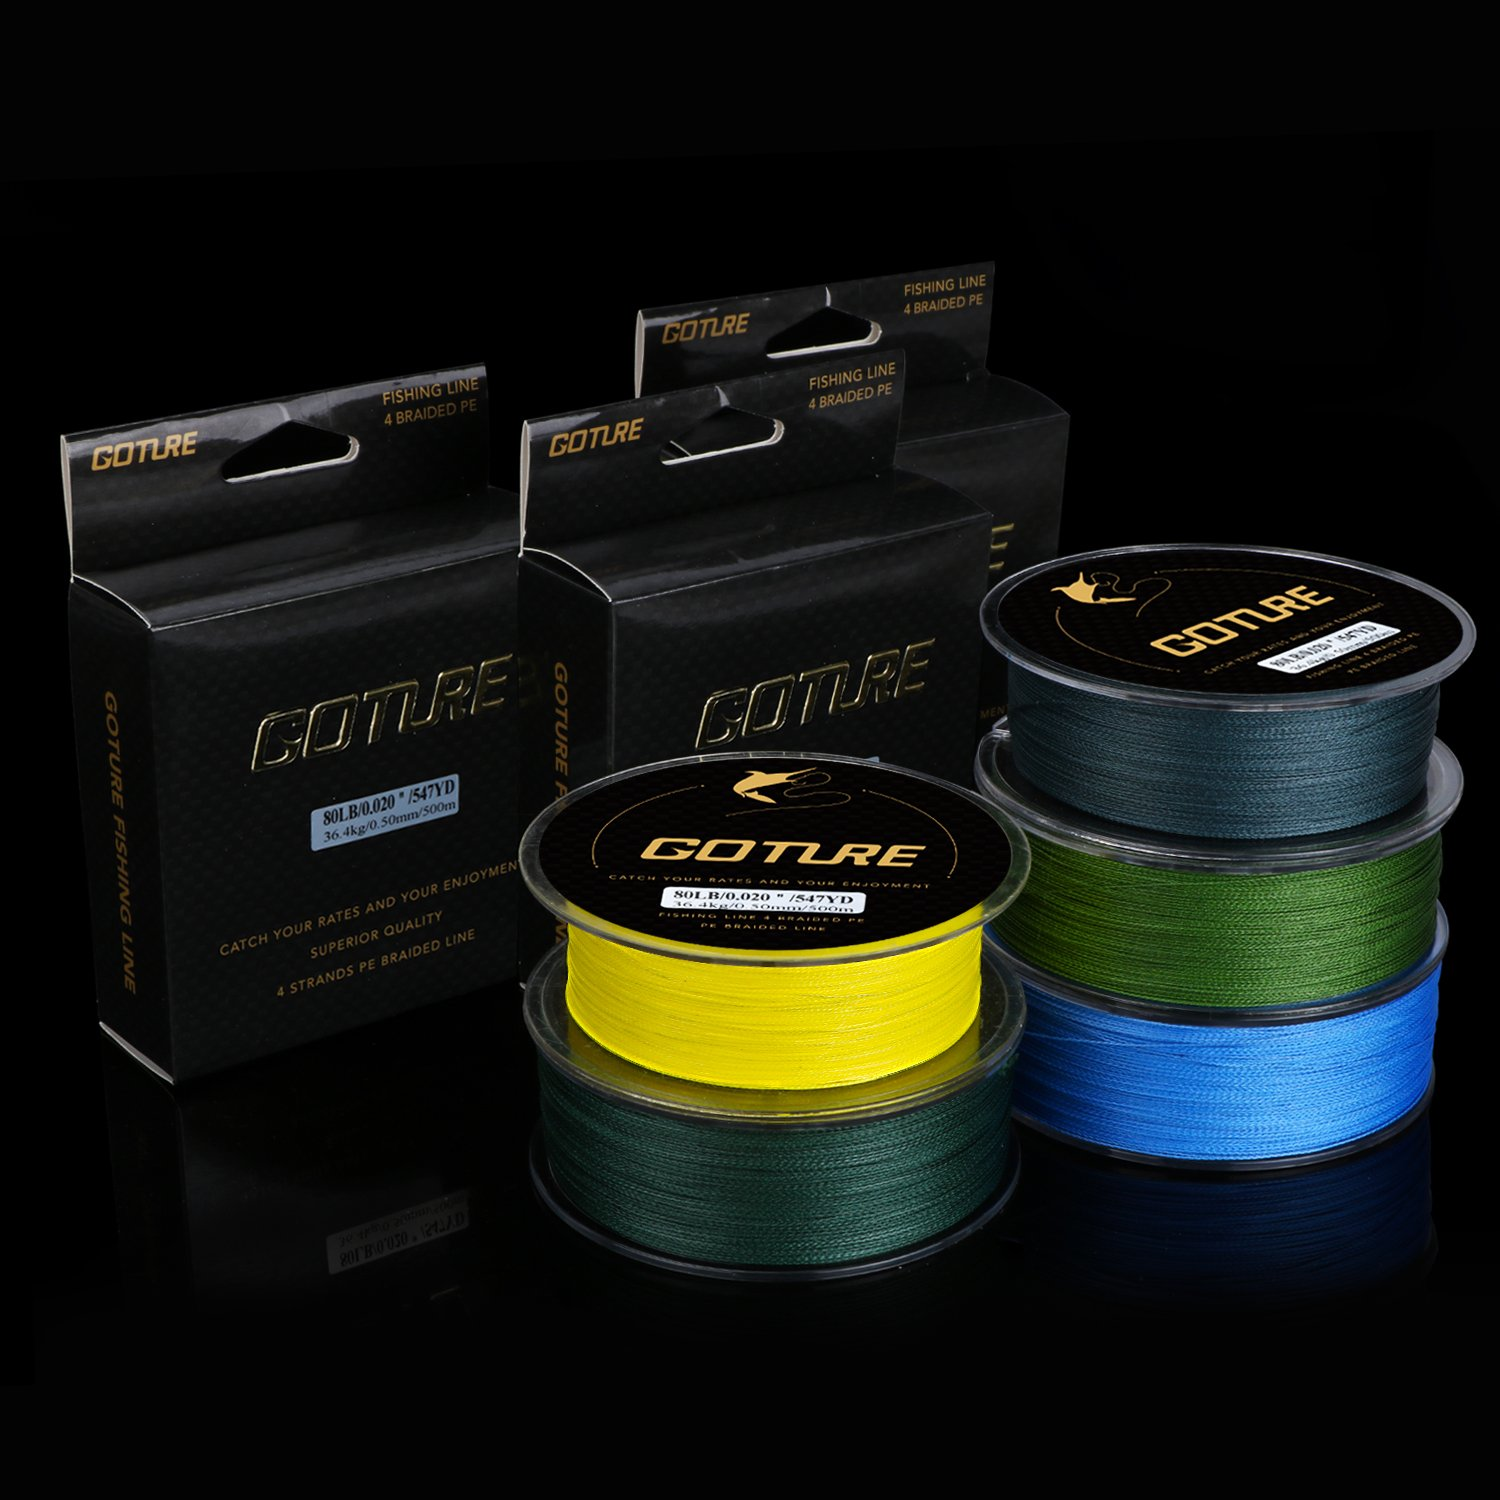 Goture 8-80LB Superpower Braided Fishing Line-Zero Stretch and High Tension Advanced Multifilamentline for Saltwater and Freshwater - Army Green, Blue, Blackish Green, Grey, Yellow- 2017 New by Goture (Image #5)